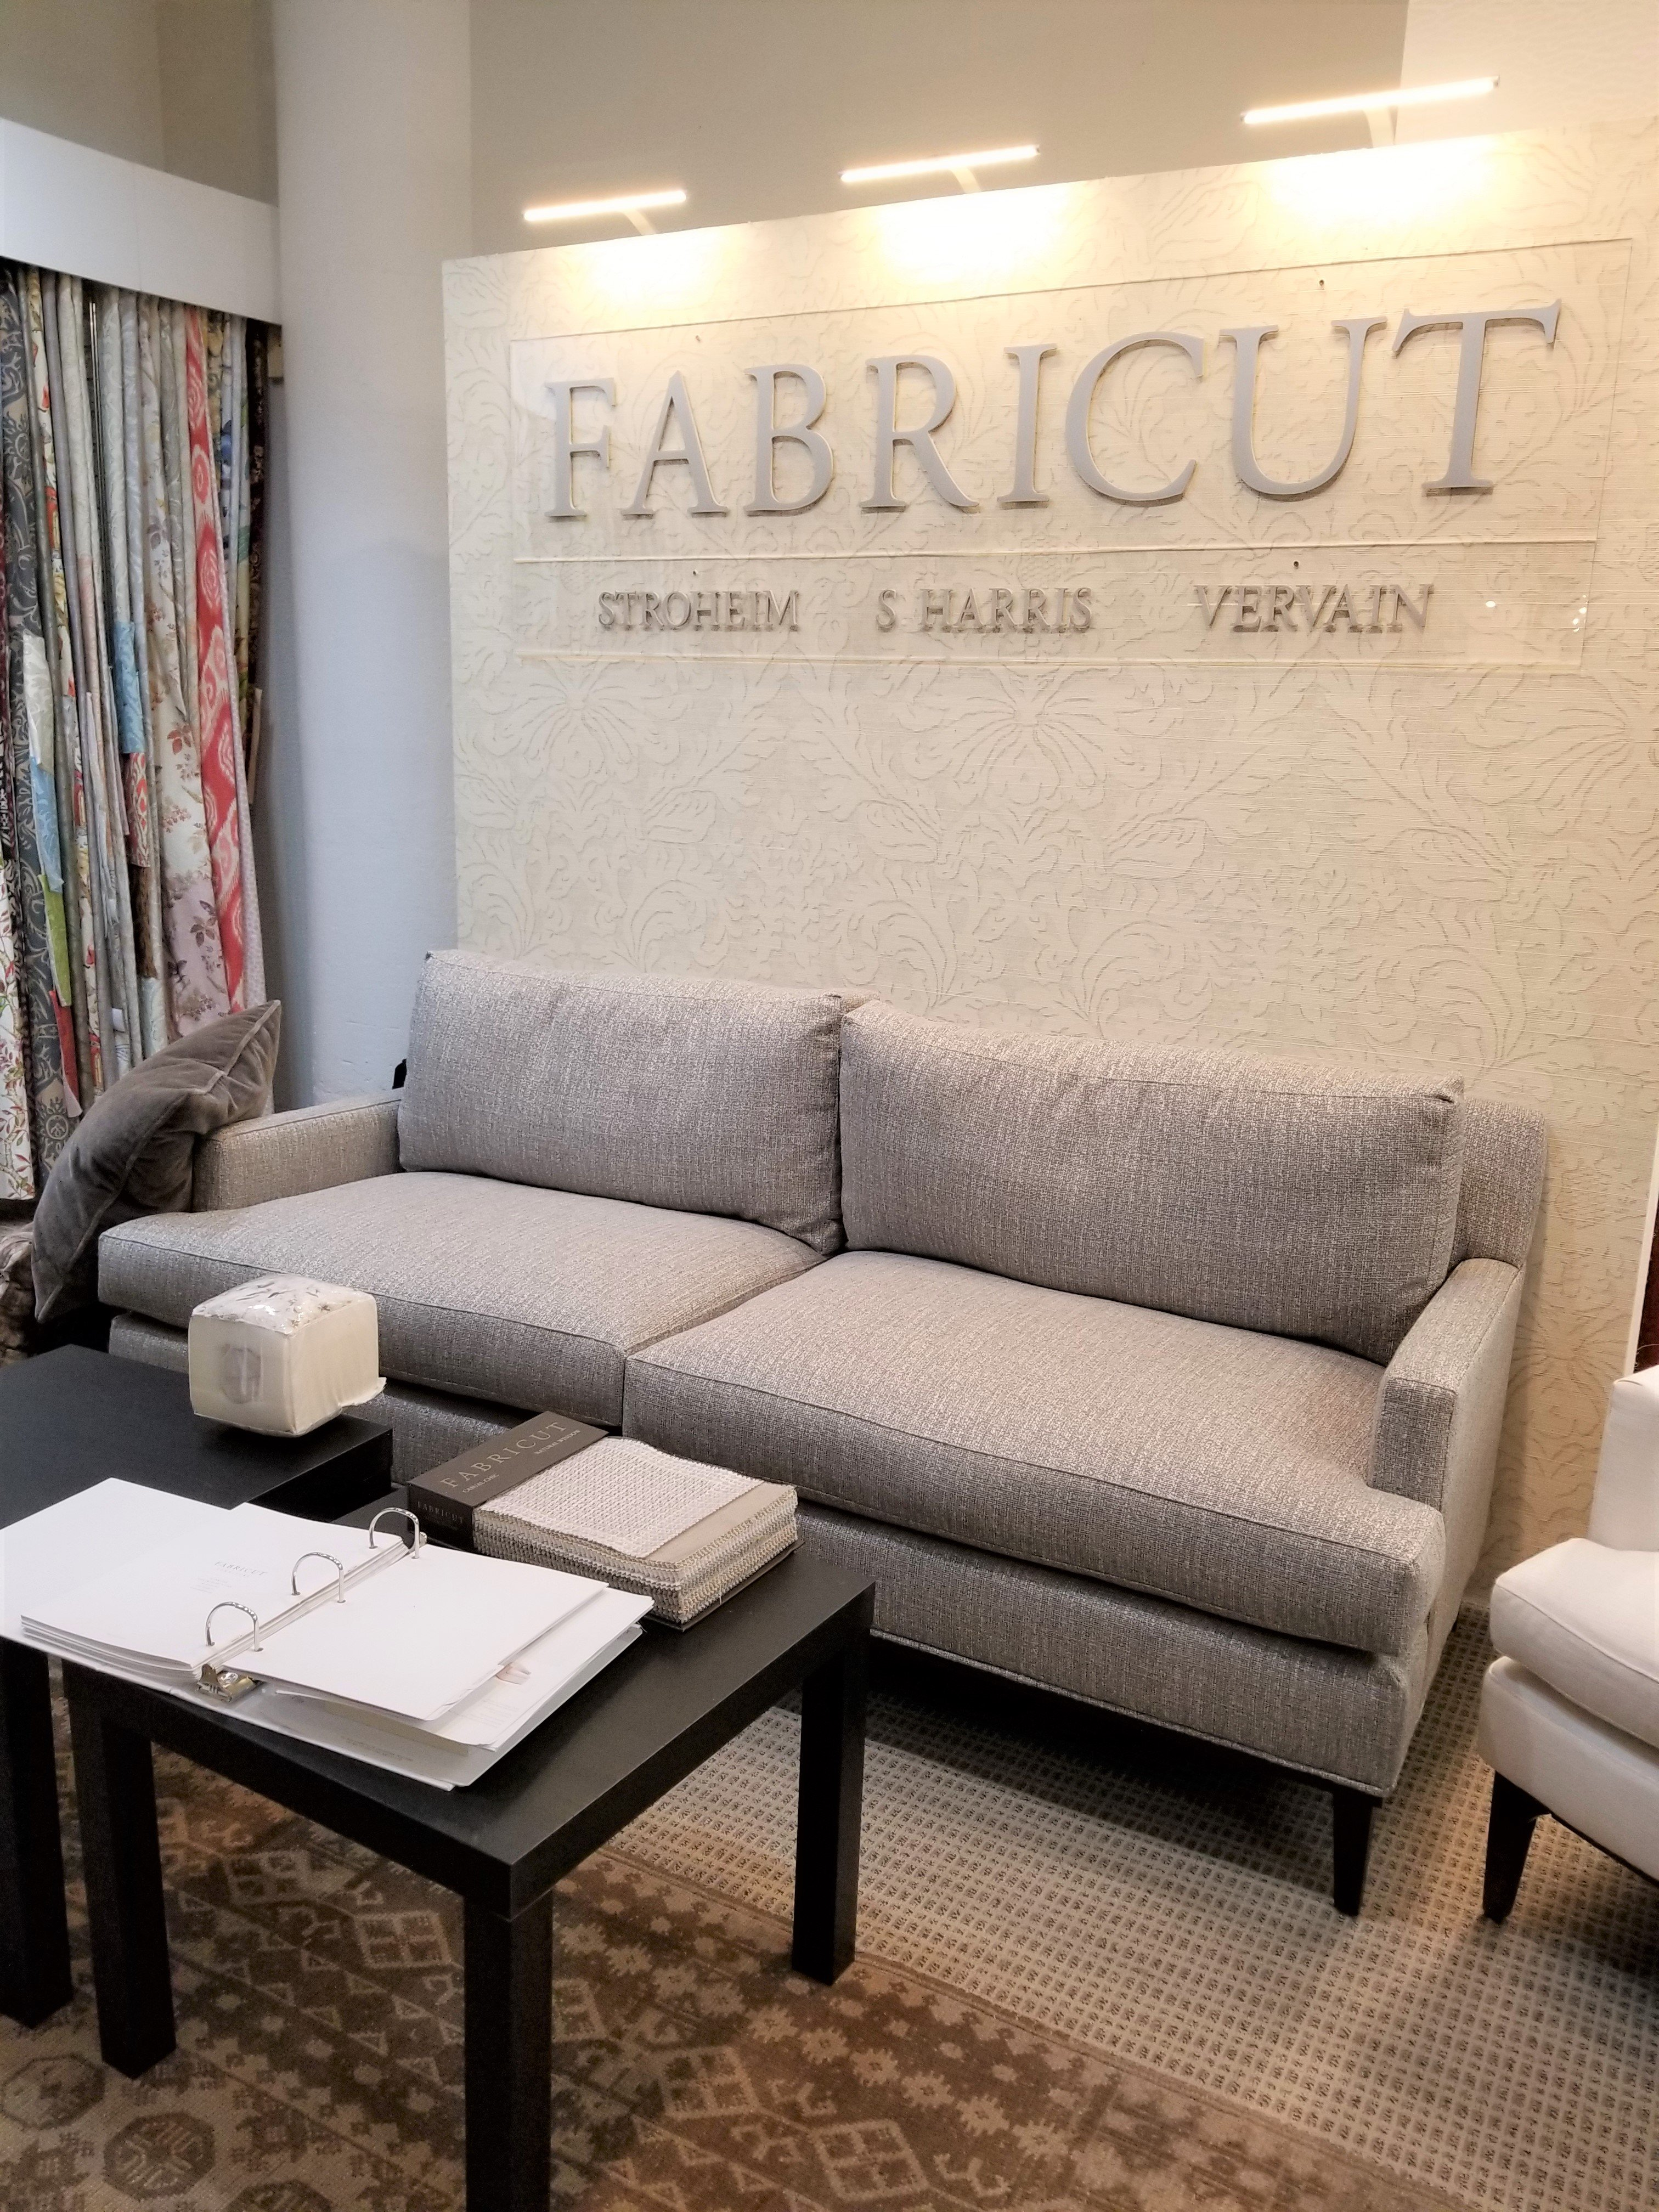 Fabricut custom furniture